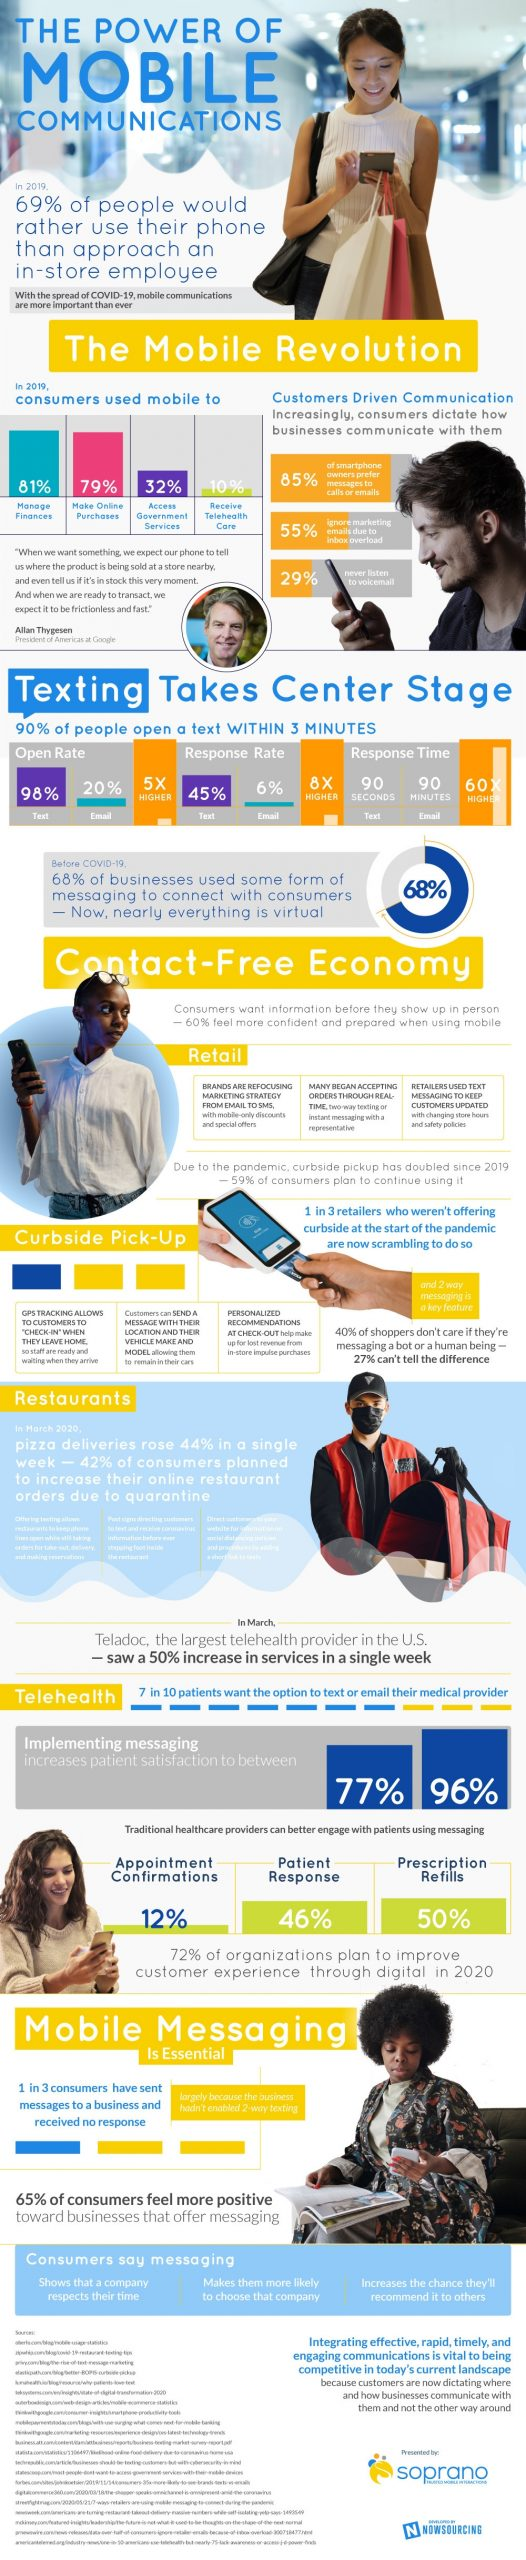 The Growing Importance of Mobile Communication [Infographic]